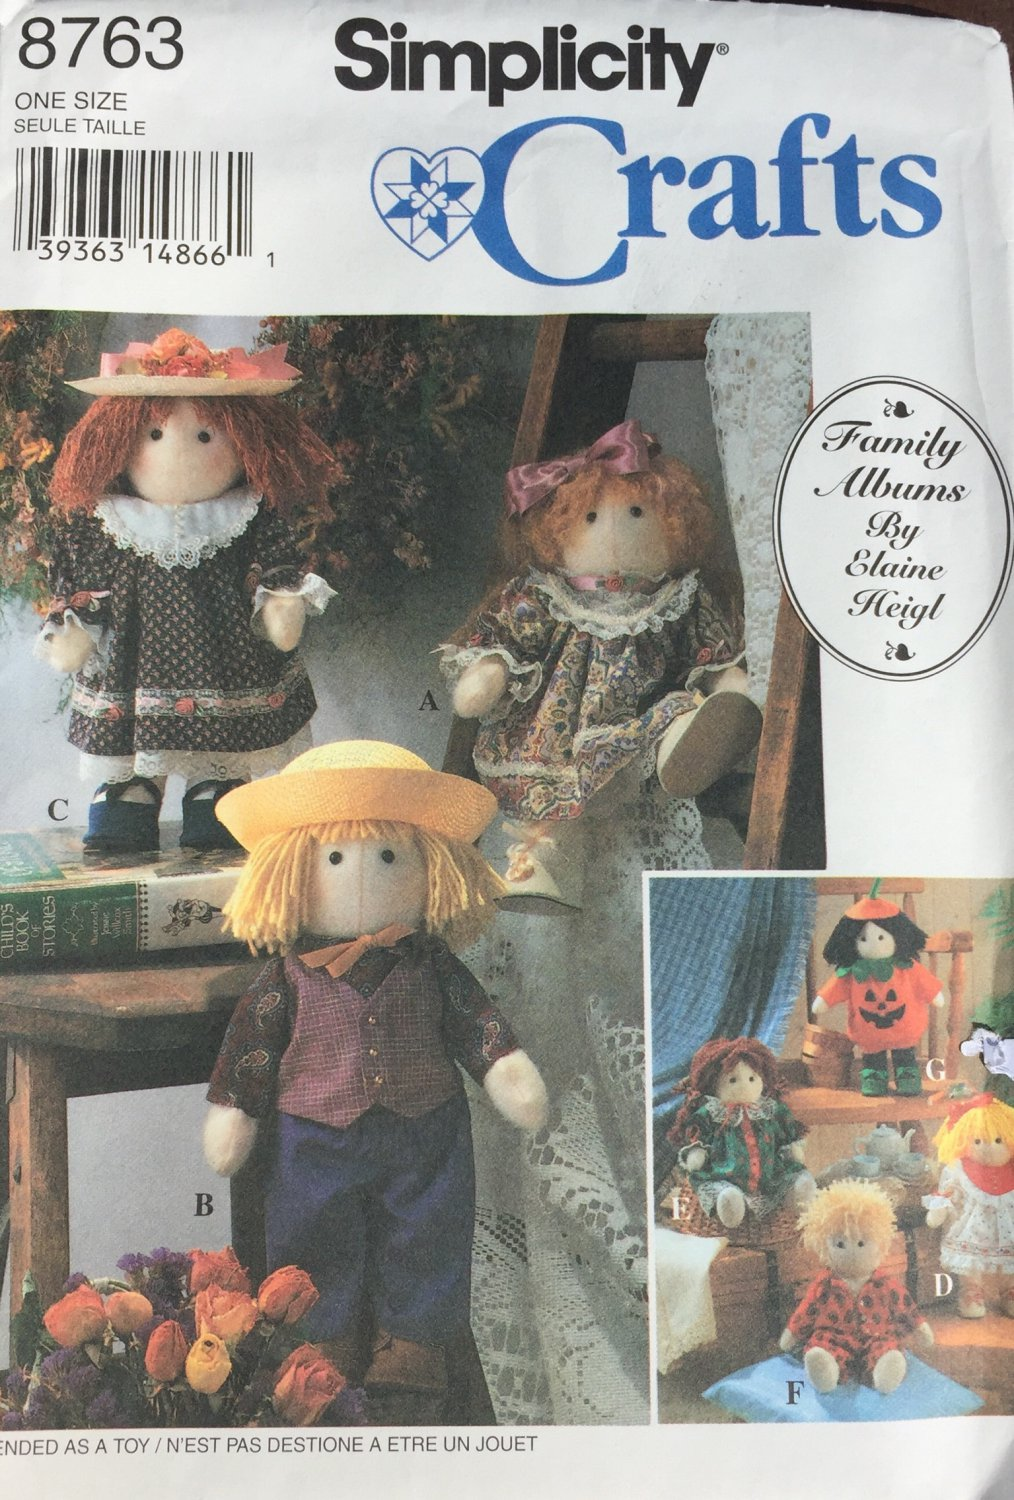 Doll and Clothes Sewing Pattern Family Albums by Elaine Heigl  UNCUT Simplicity 8763